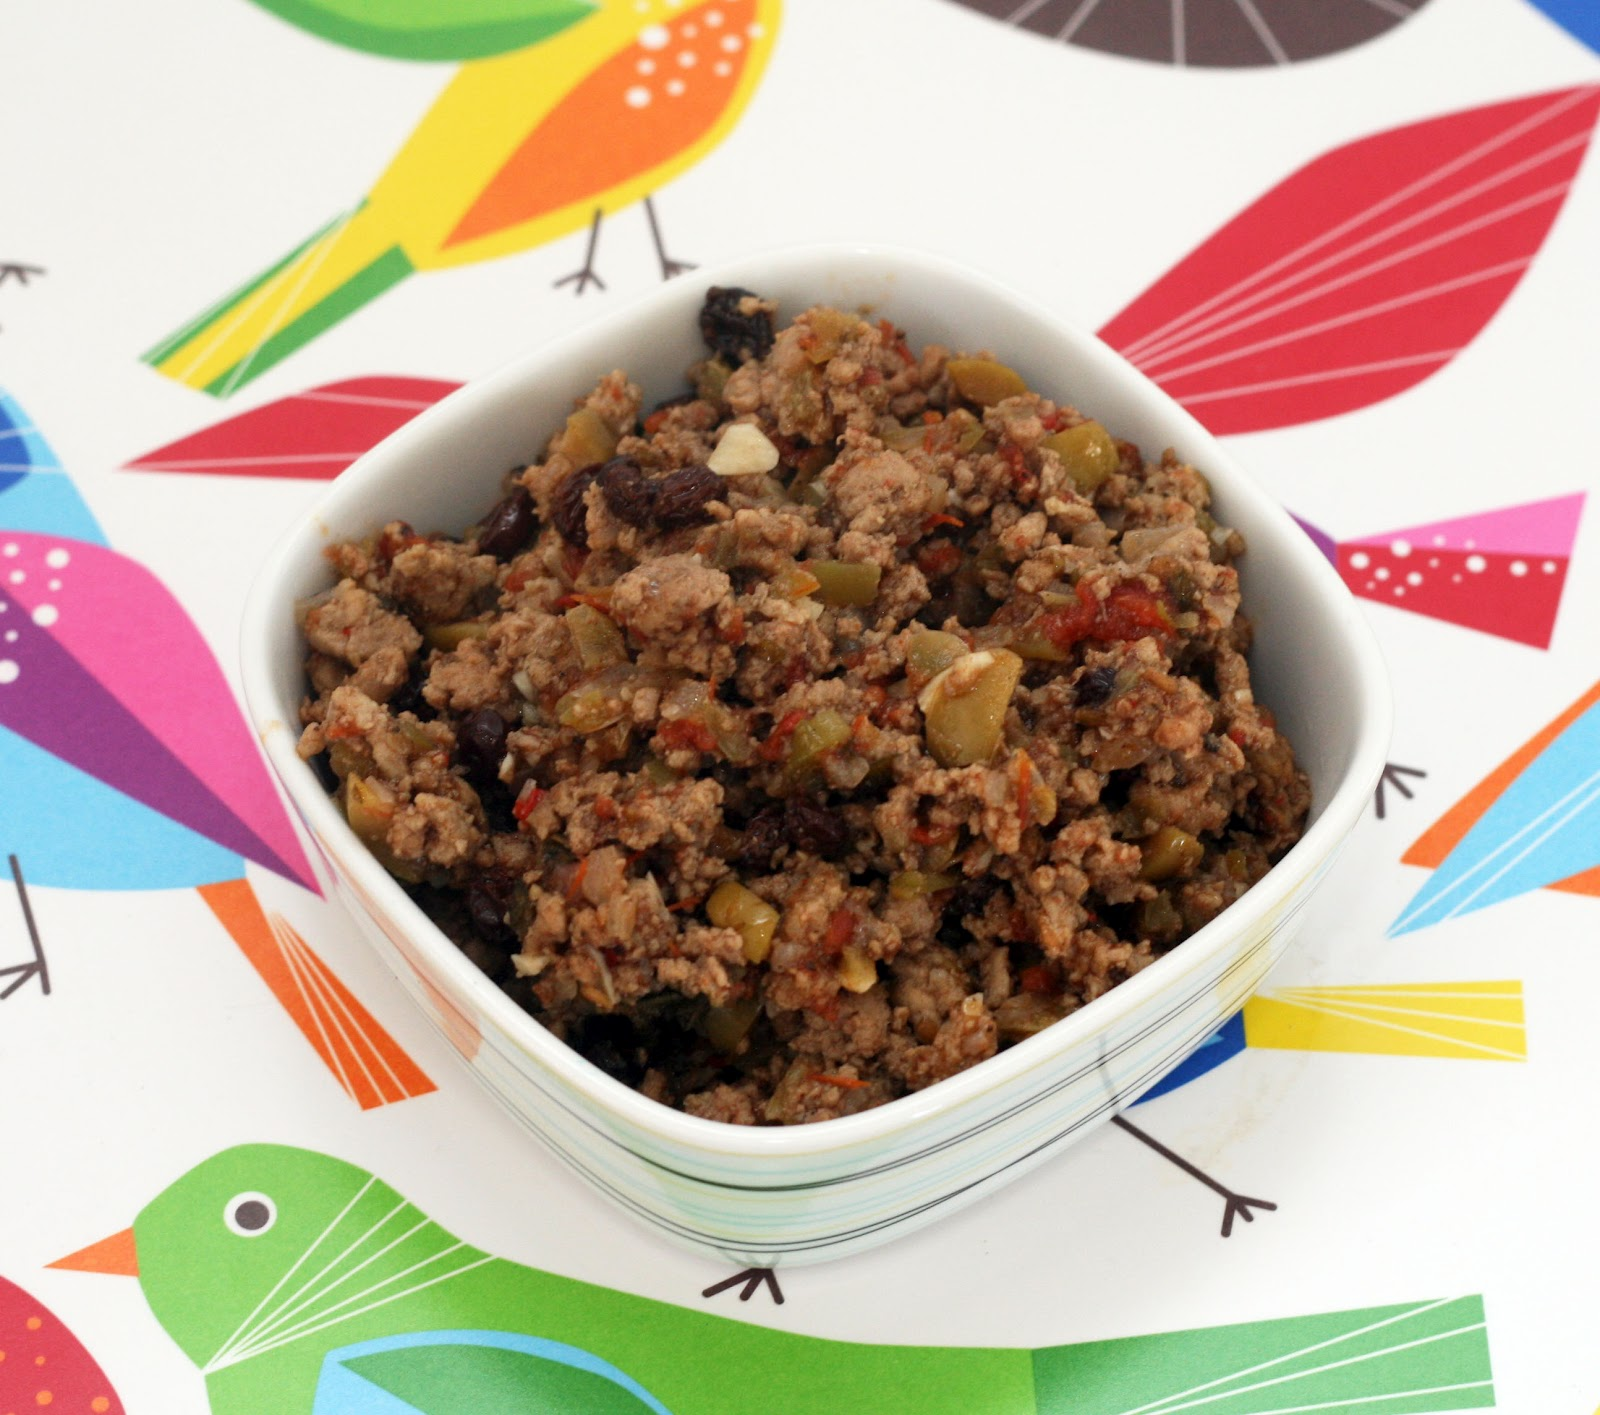 ... & Lime // recipes by Rachel Rappaport: Cuban-style Turkey Picadillo